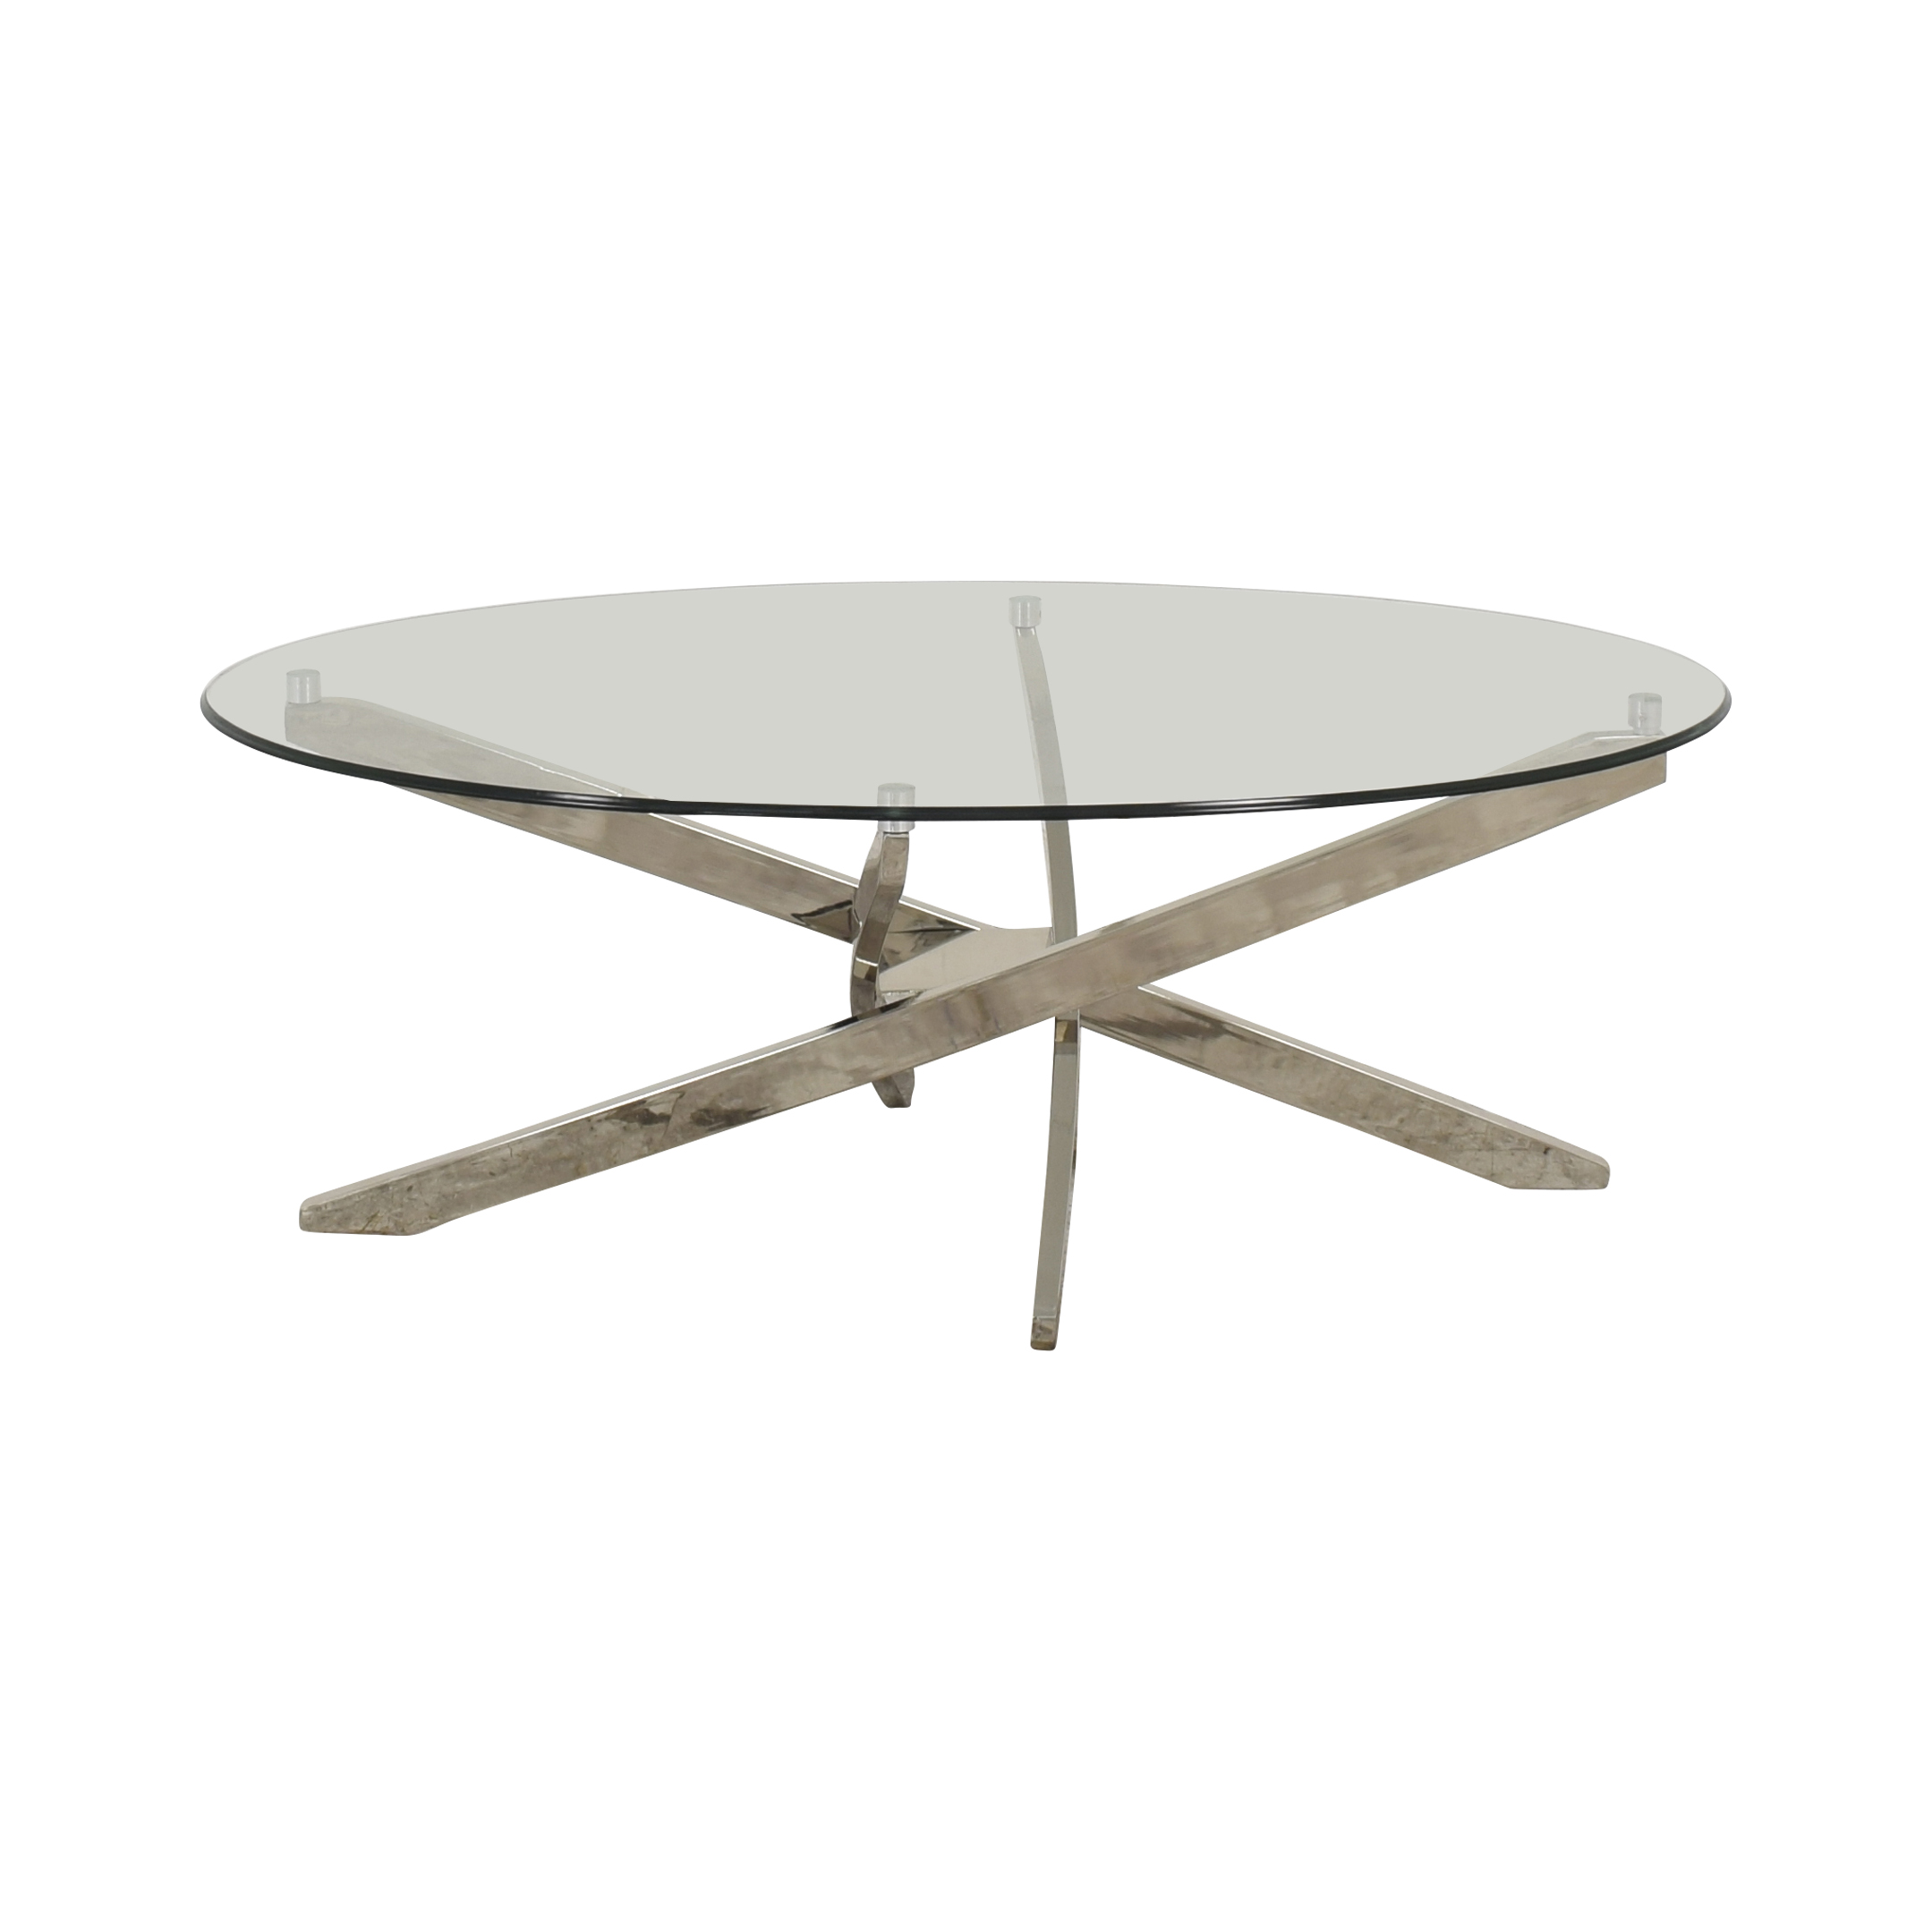 Magnussen Home Magnussen Zila Oval Coffee Table price